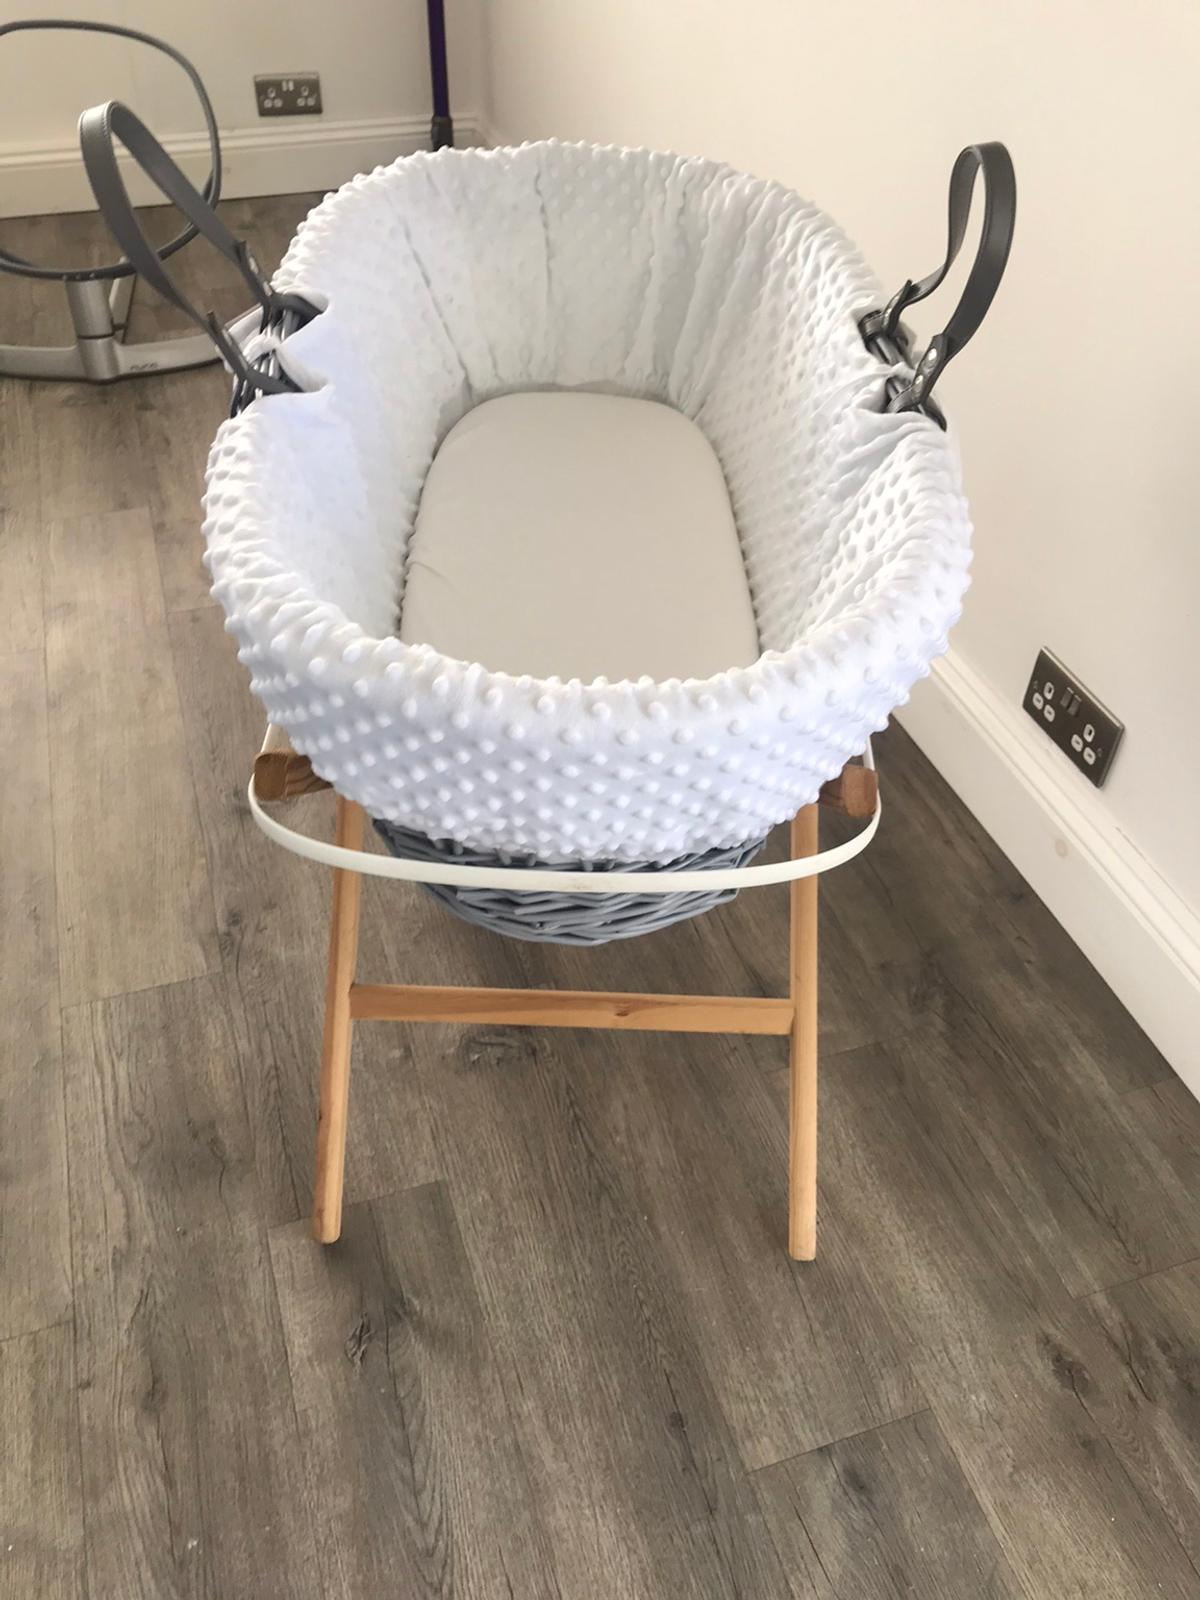 Comes with change of colour scheme from white to grey, also has a hood in both colours and a little blanket in both colours. Can send more photos if requested.